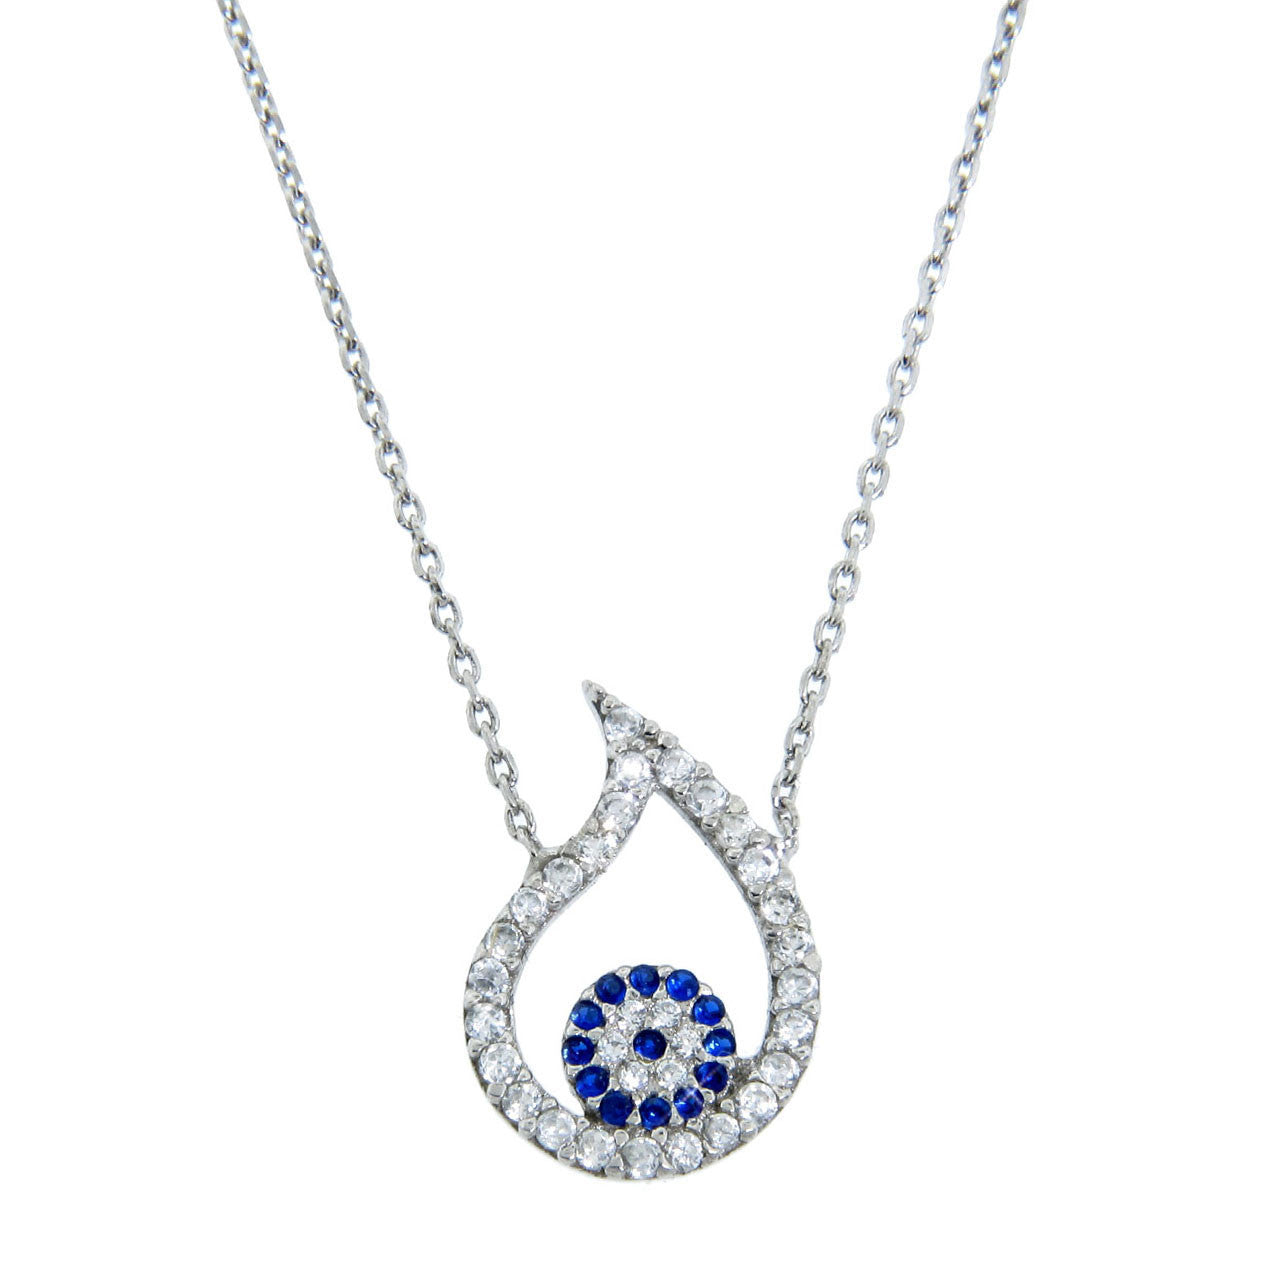 Tear Drop Evil Eye Necklace